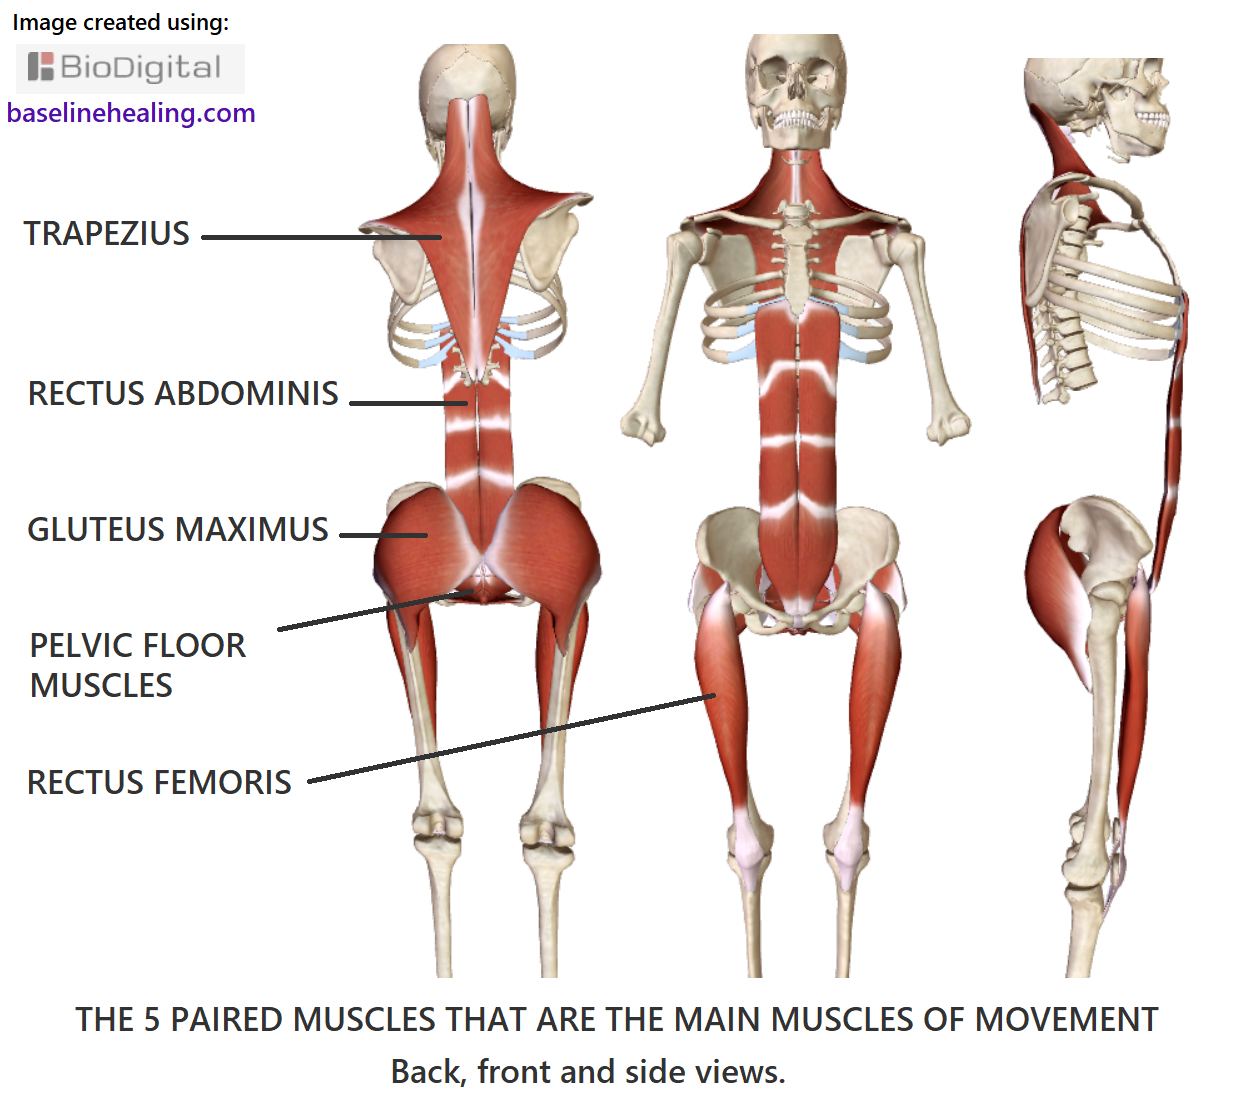 the 5 main muscles of movement labelled, paired, left and right sides. Trapezius, rectus abdominis, gluteus maximus, pelvic floor (group of muscles) and rectus femoris.